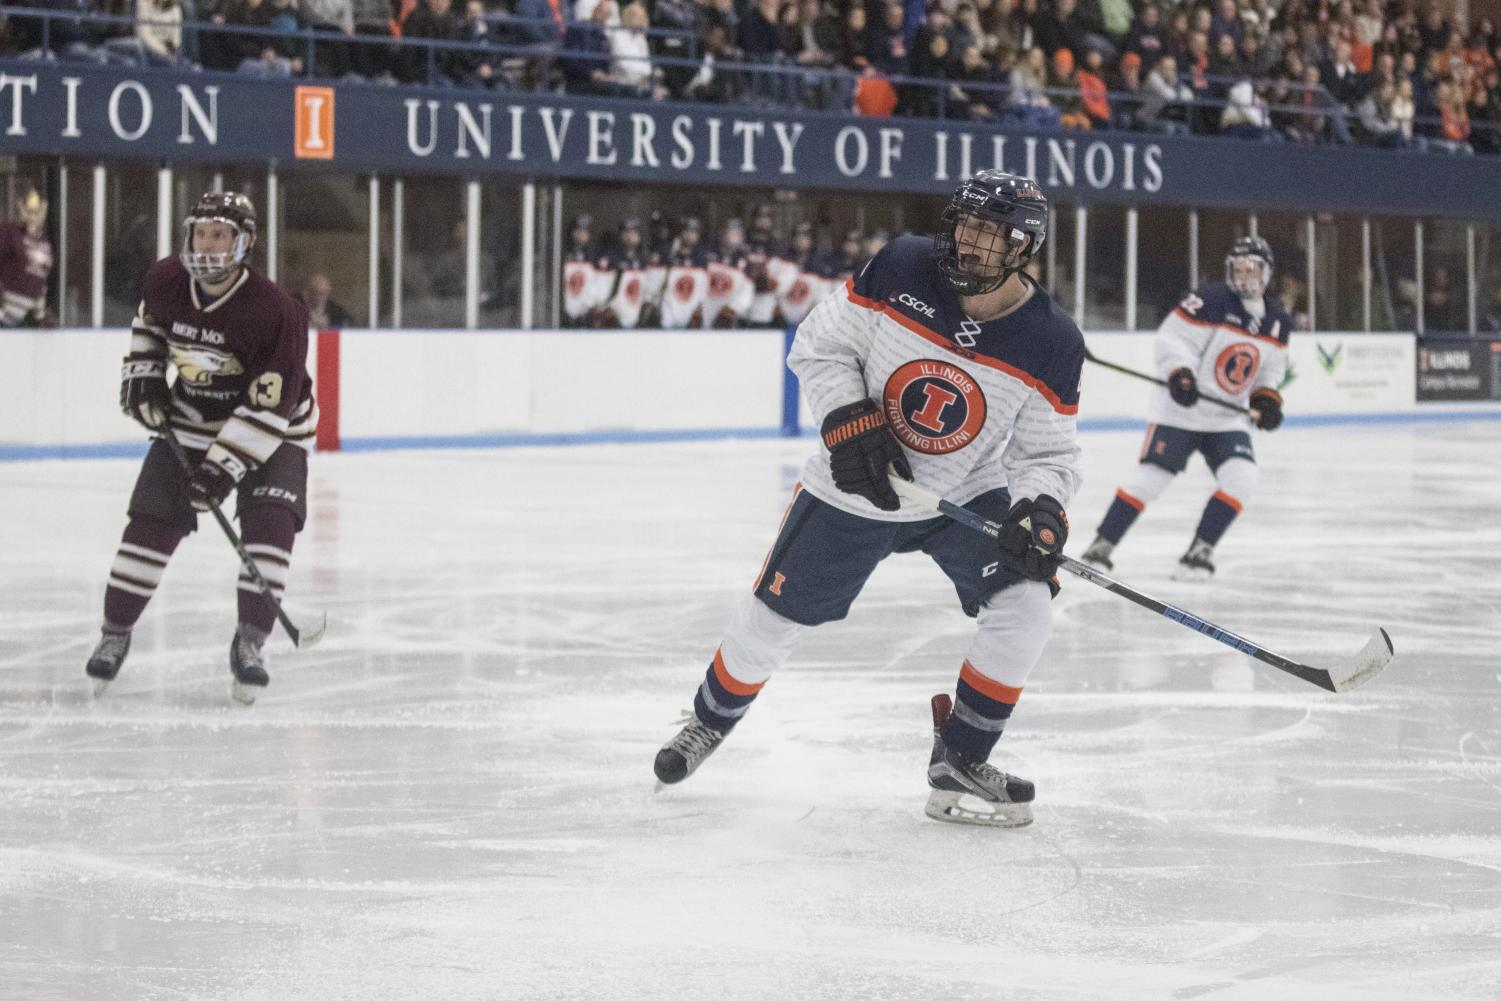 Mark Candotti calls for a pass from his teammate against Robert Morris at the Ice Arena on Nov. 2. Illinois shut out Robert Morris 6-0.